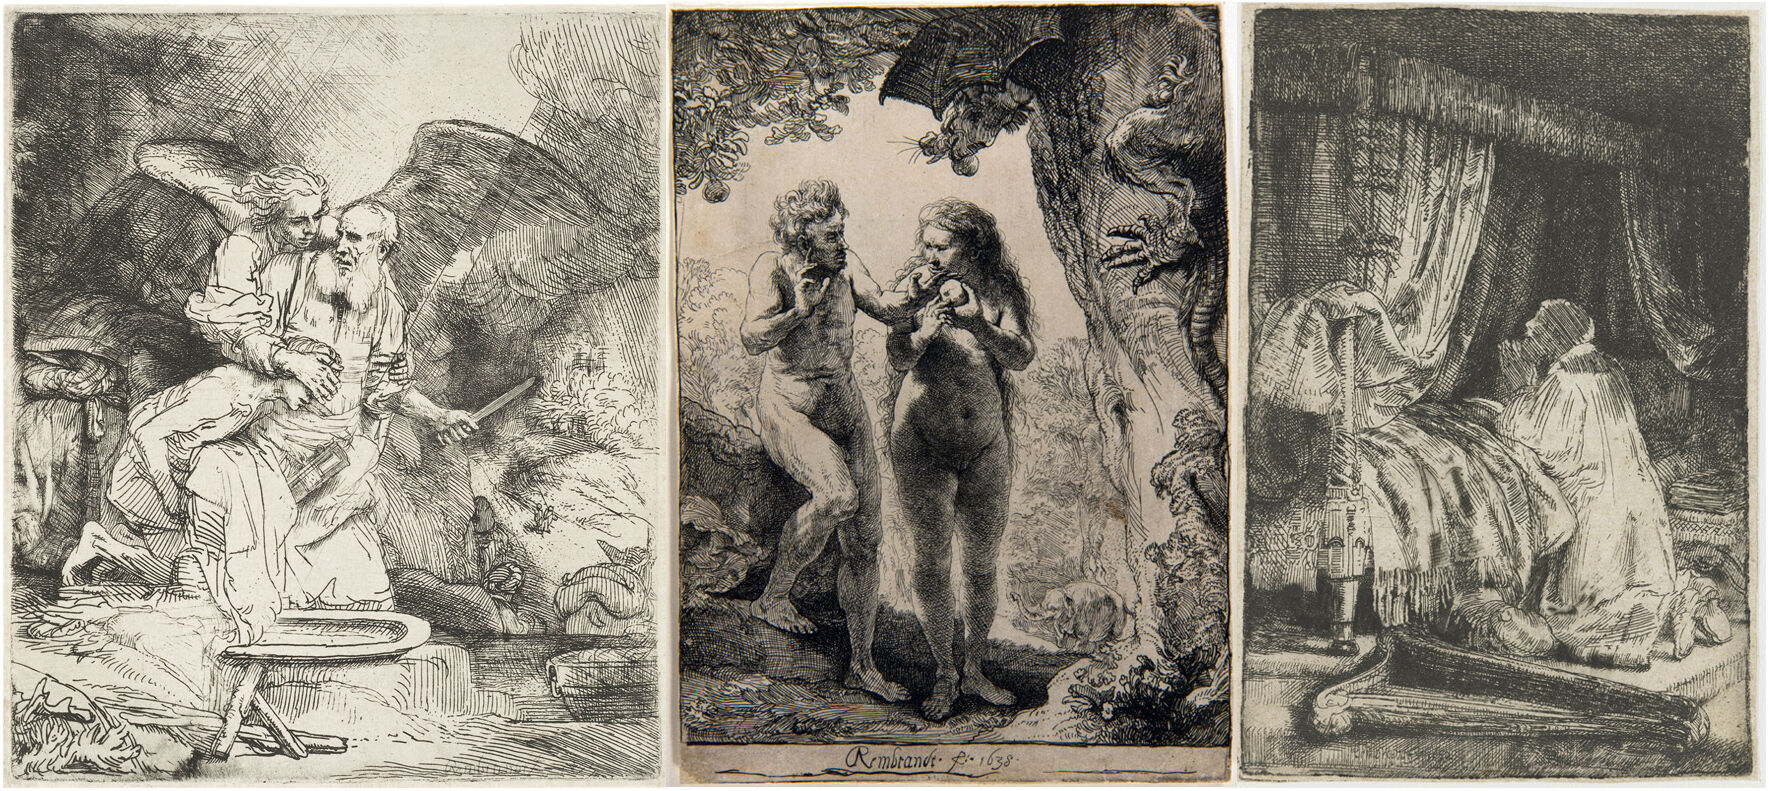 From left to right: Rembrandt van Rijn, The Sacrifice of Abraham, 1655; Adam and Eve,  1638; David at Prayer,  1652. Courtesy of the Rijksmuseum.